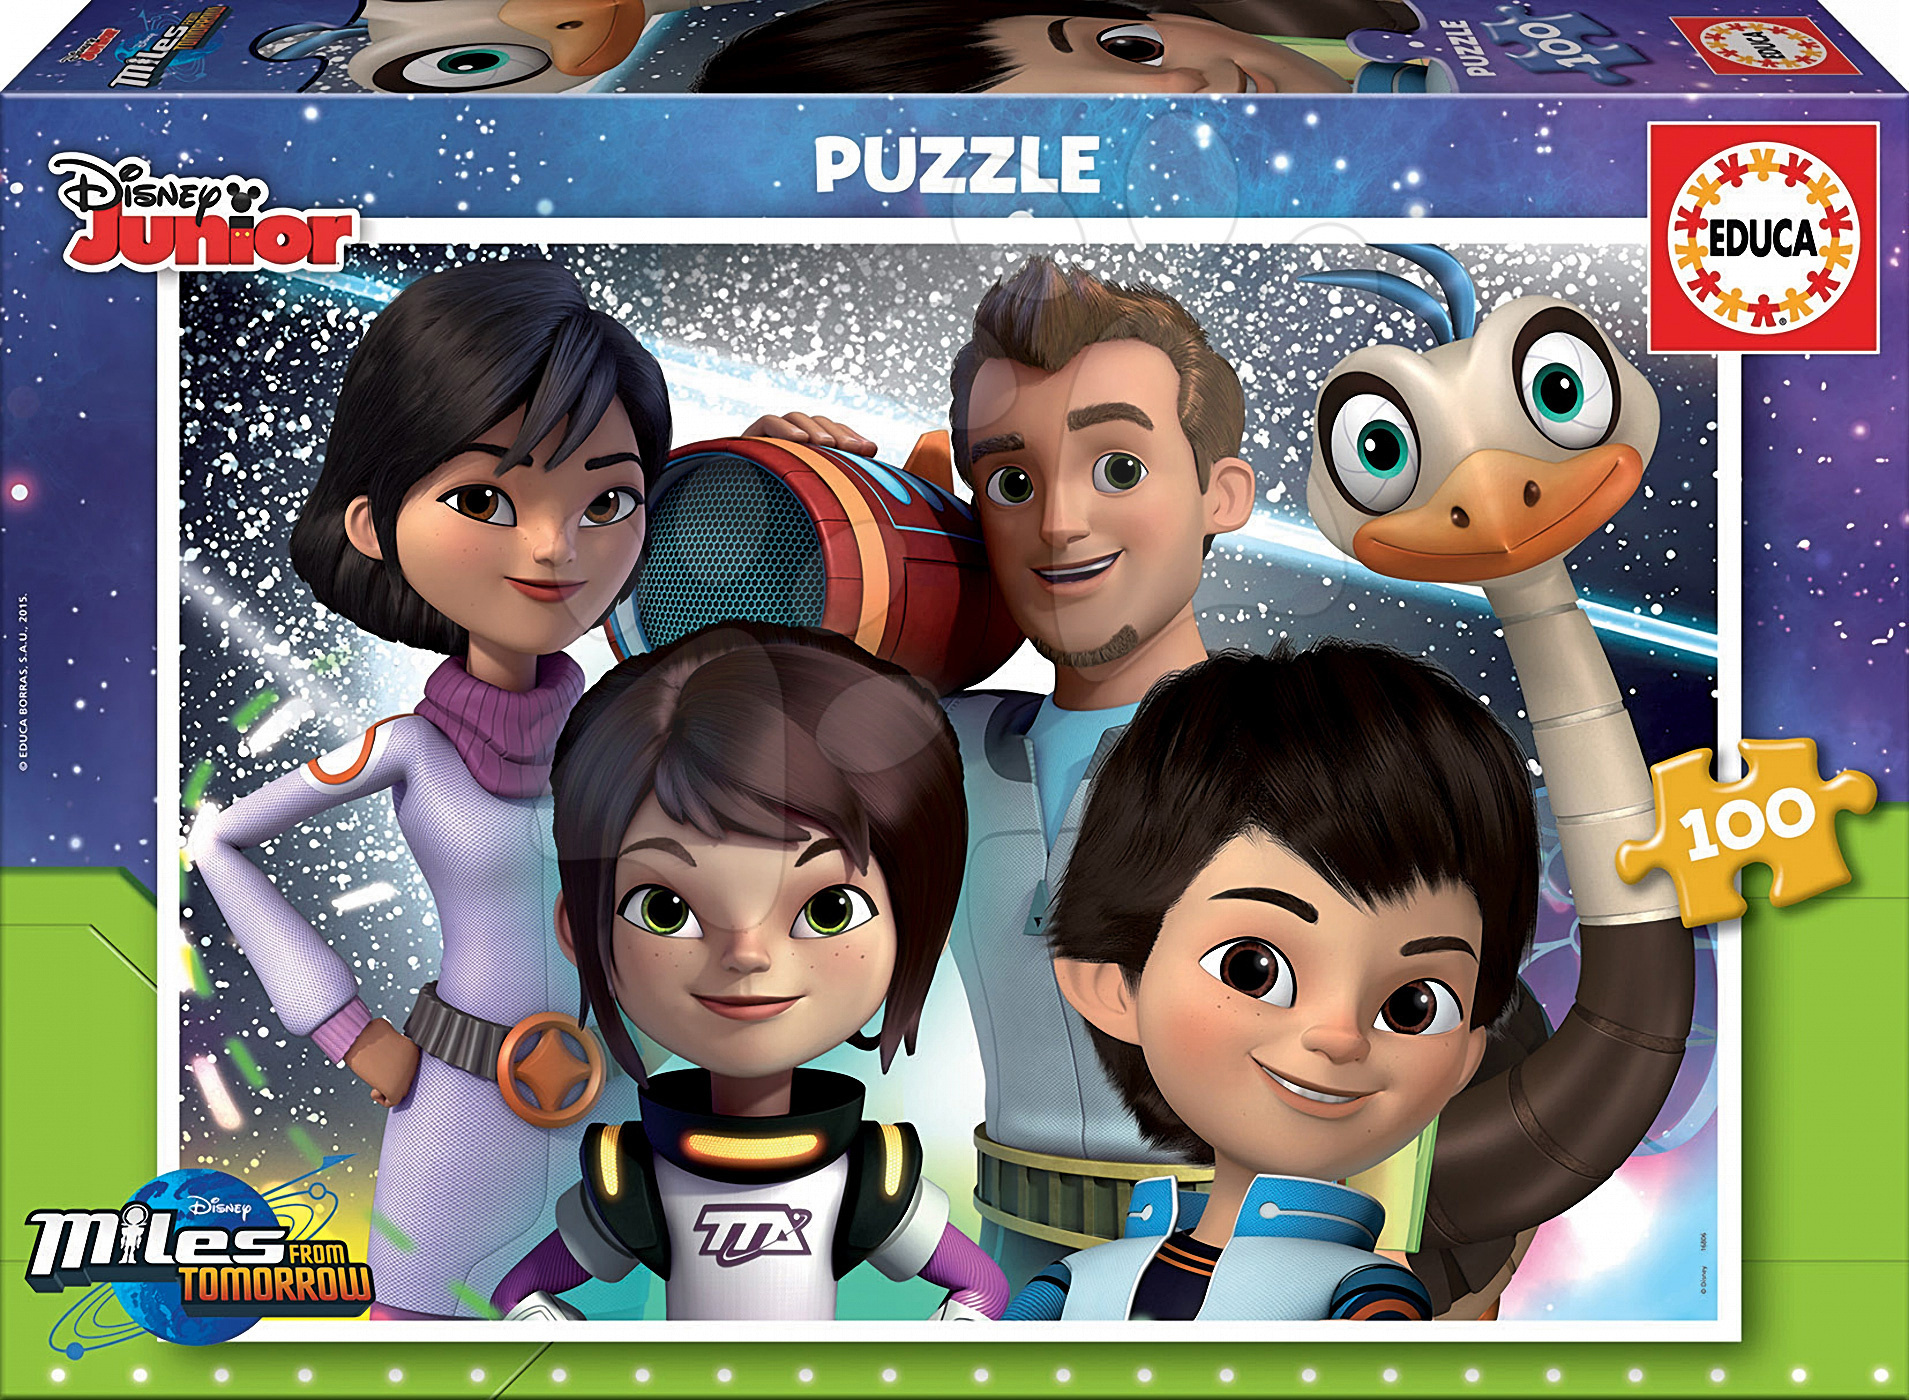 Puzzle Miles from Tomorrow Educa 100 dílů od 5 let